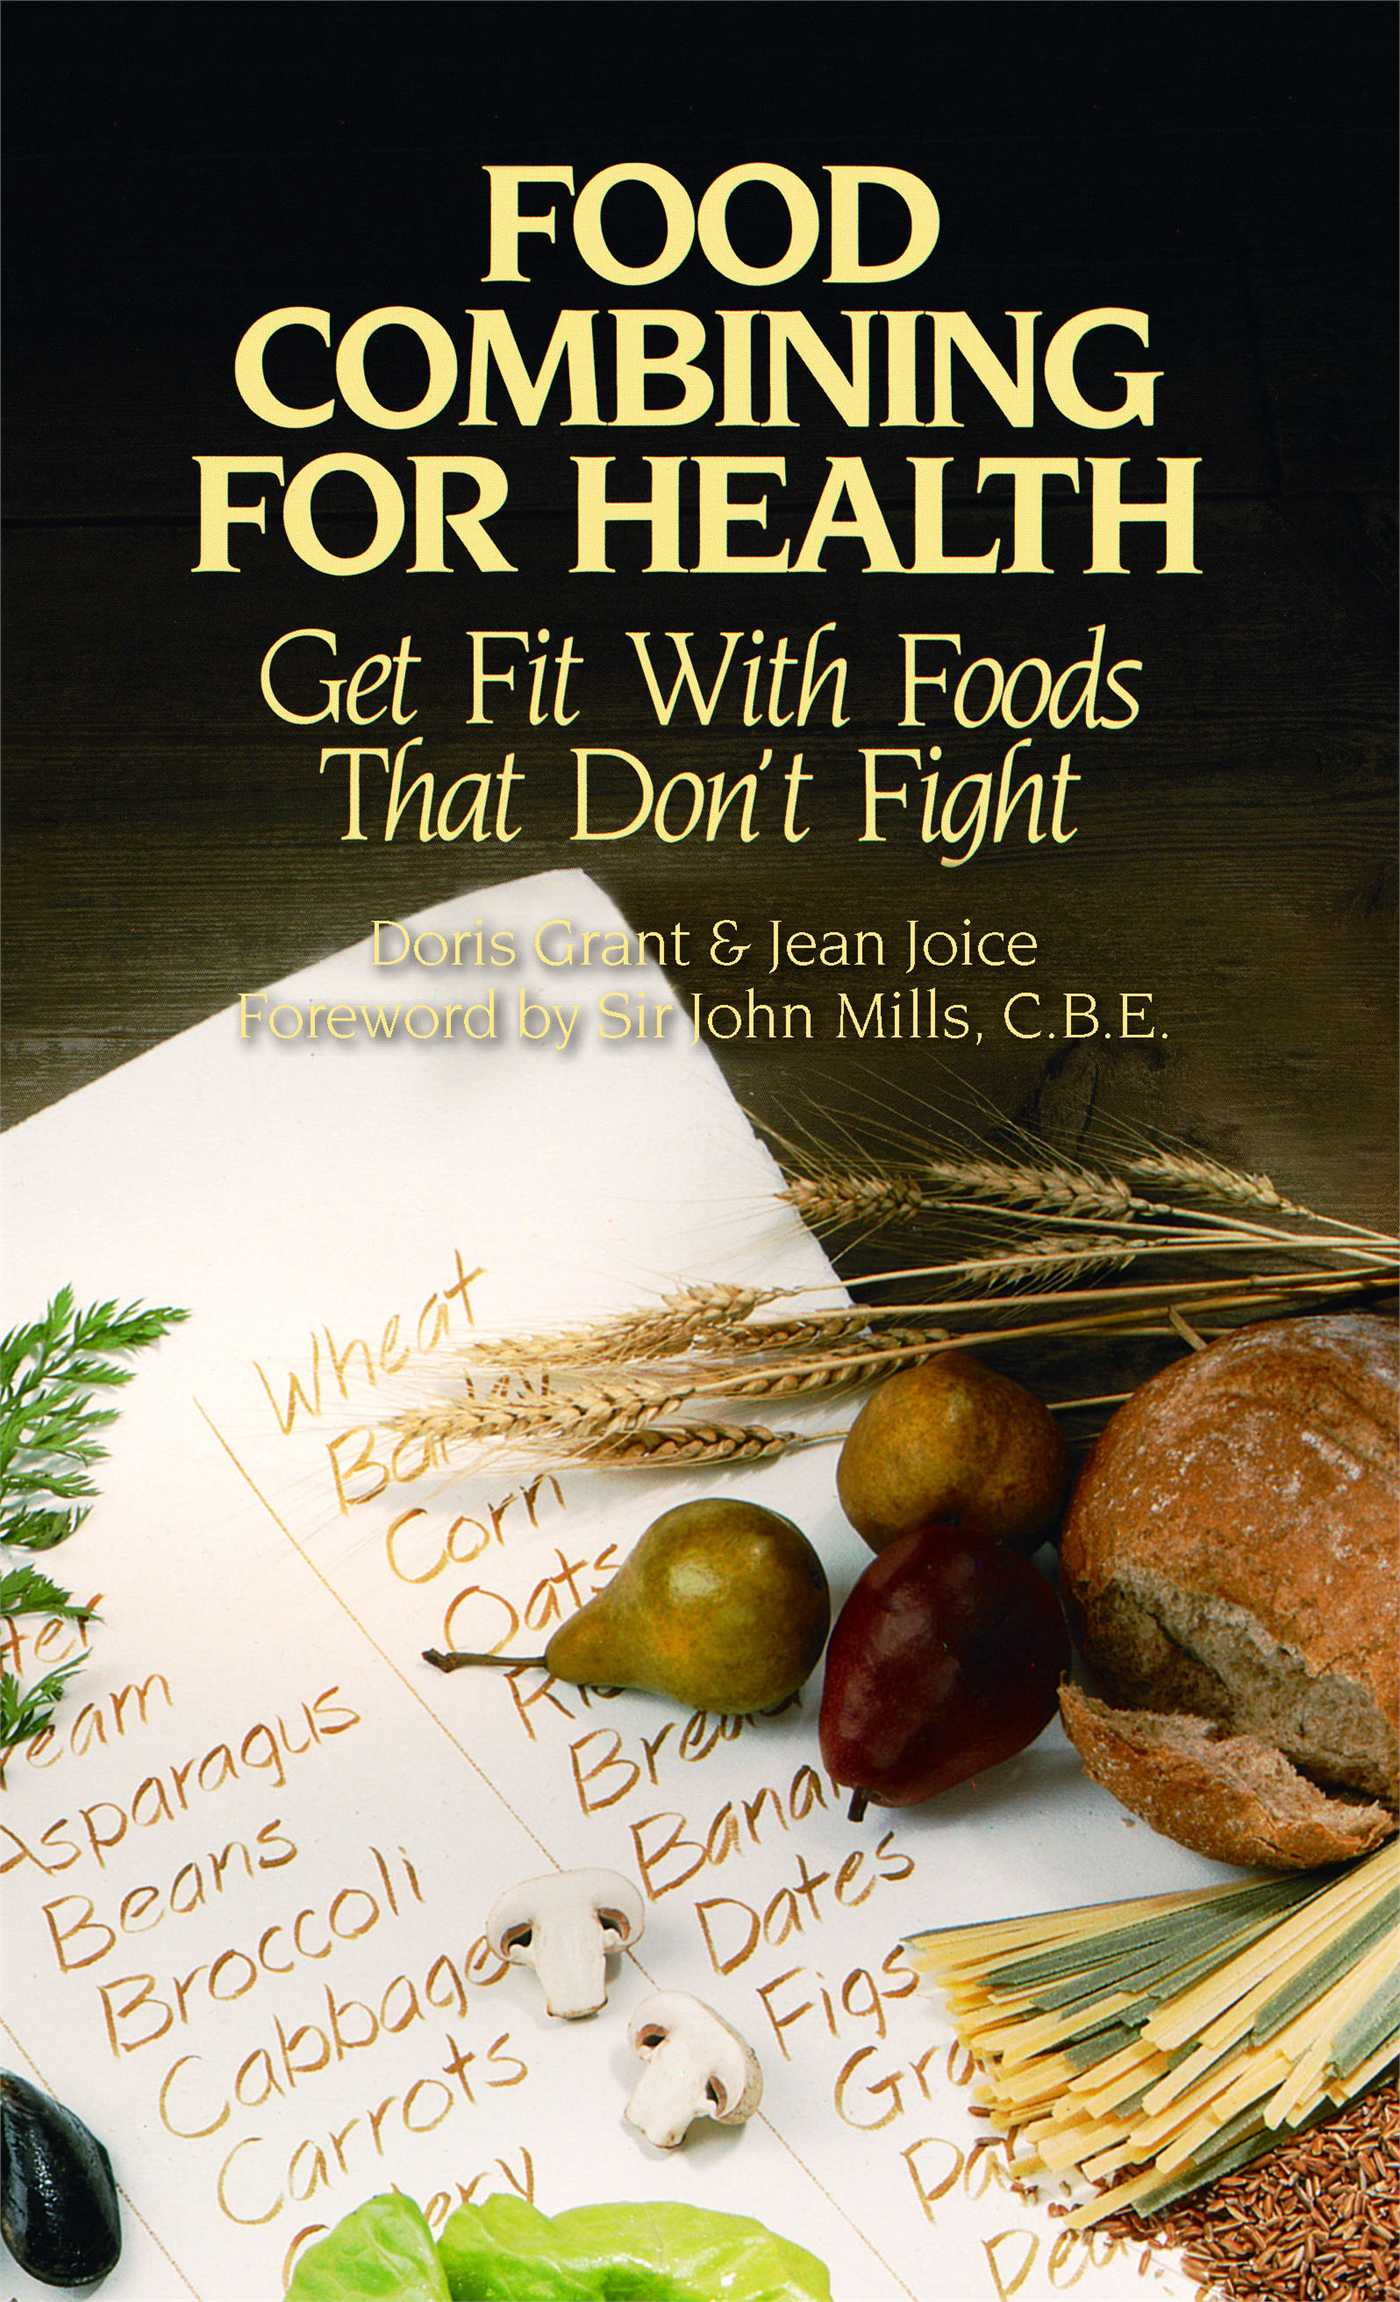 Food combining for health book by doris grant jean joice sir food combining for health 9780892813483 hr forumfinder Image collections